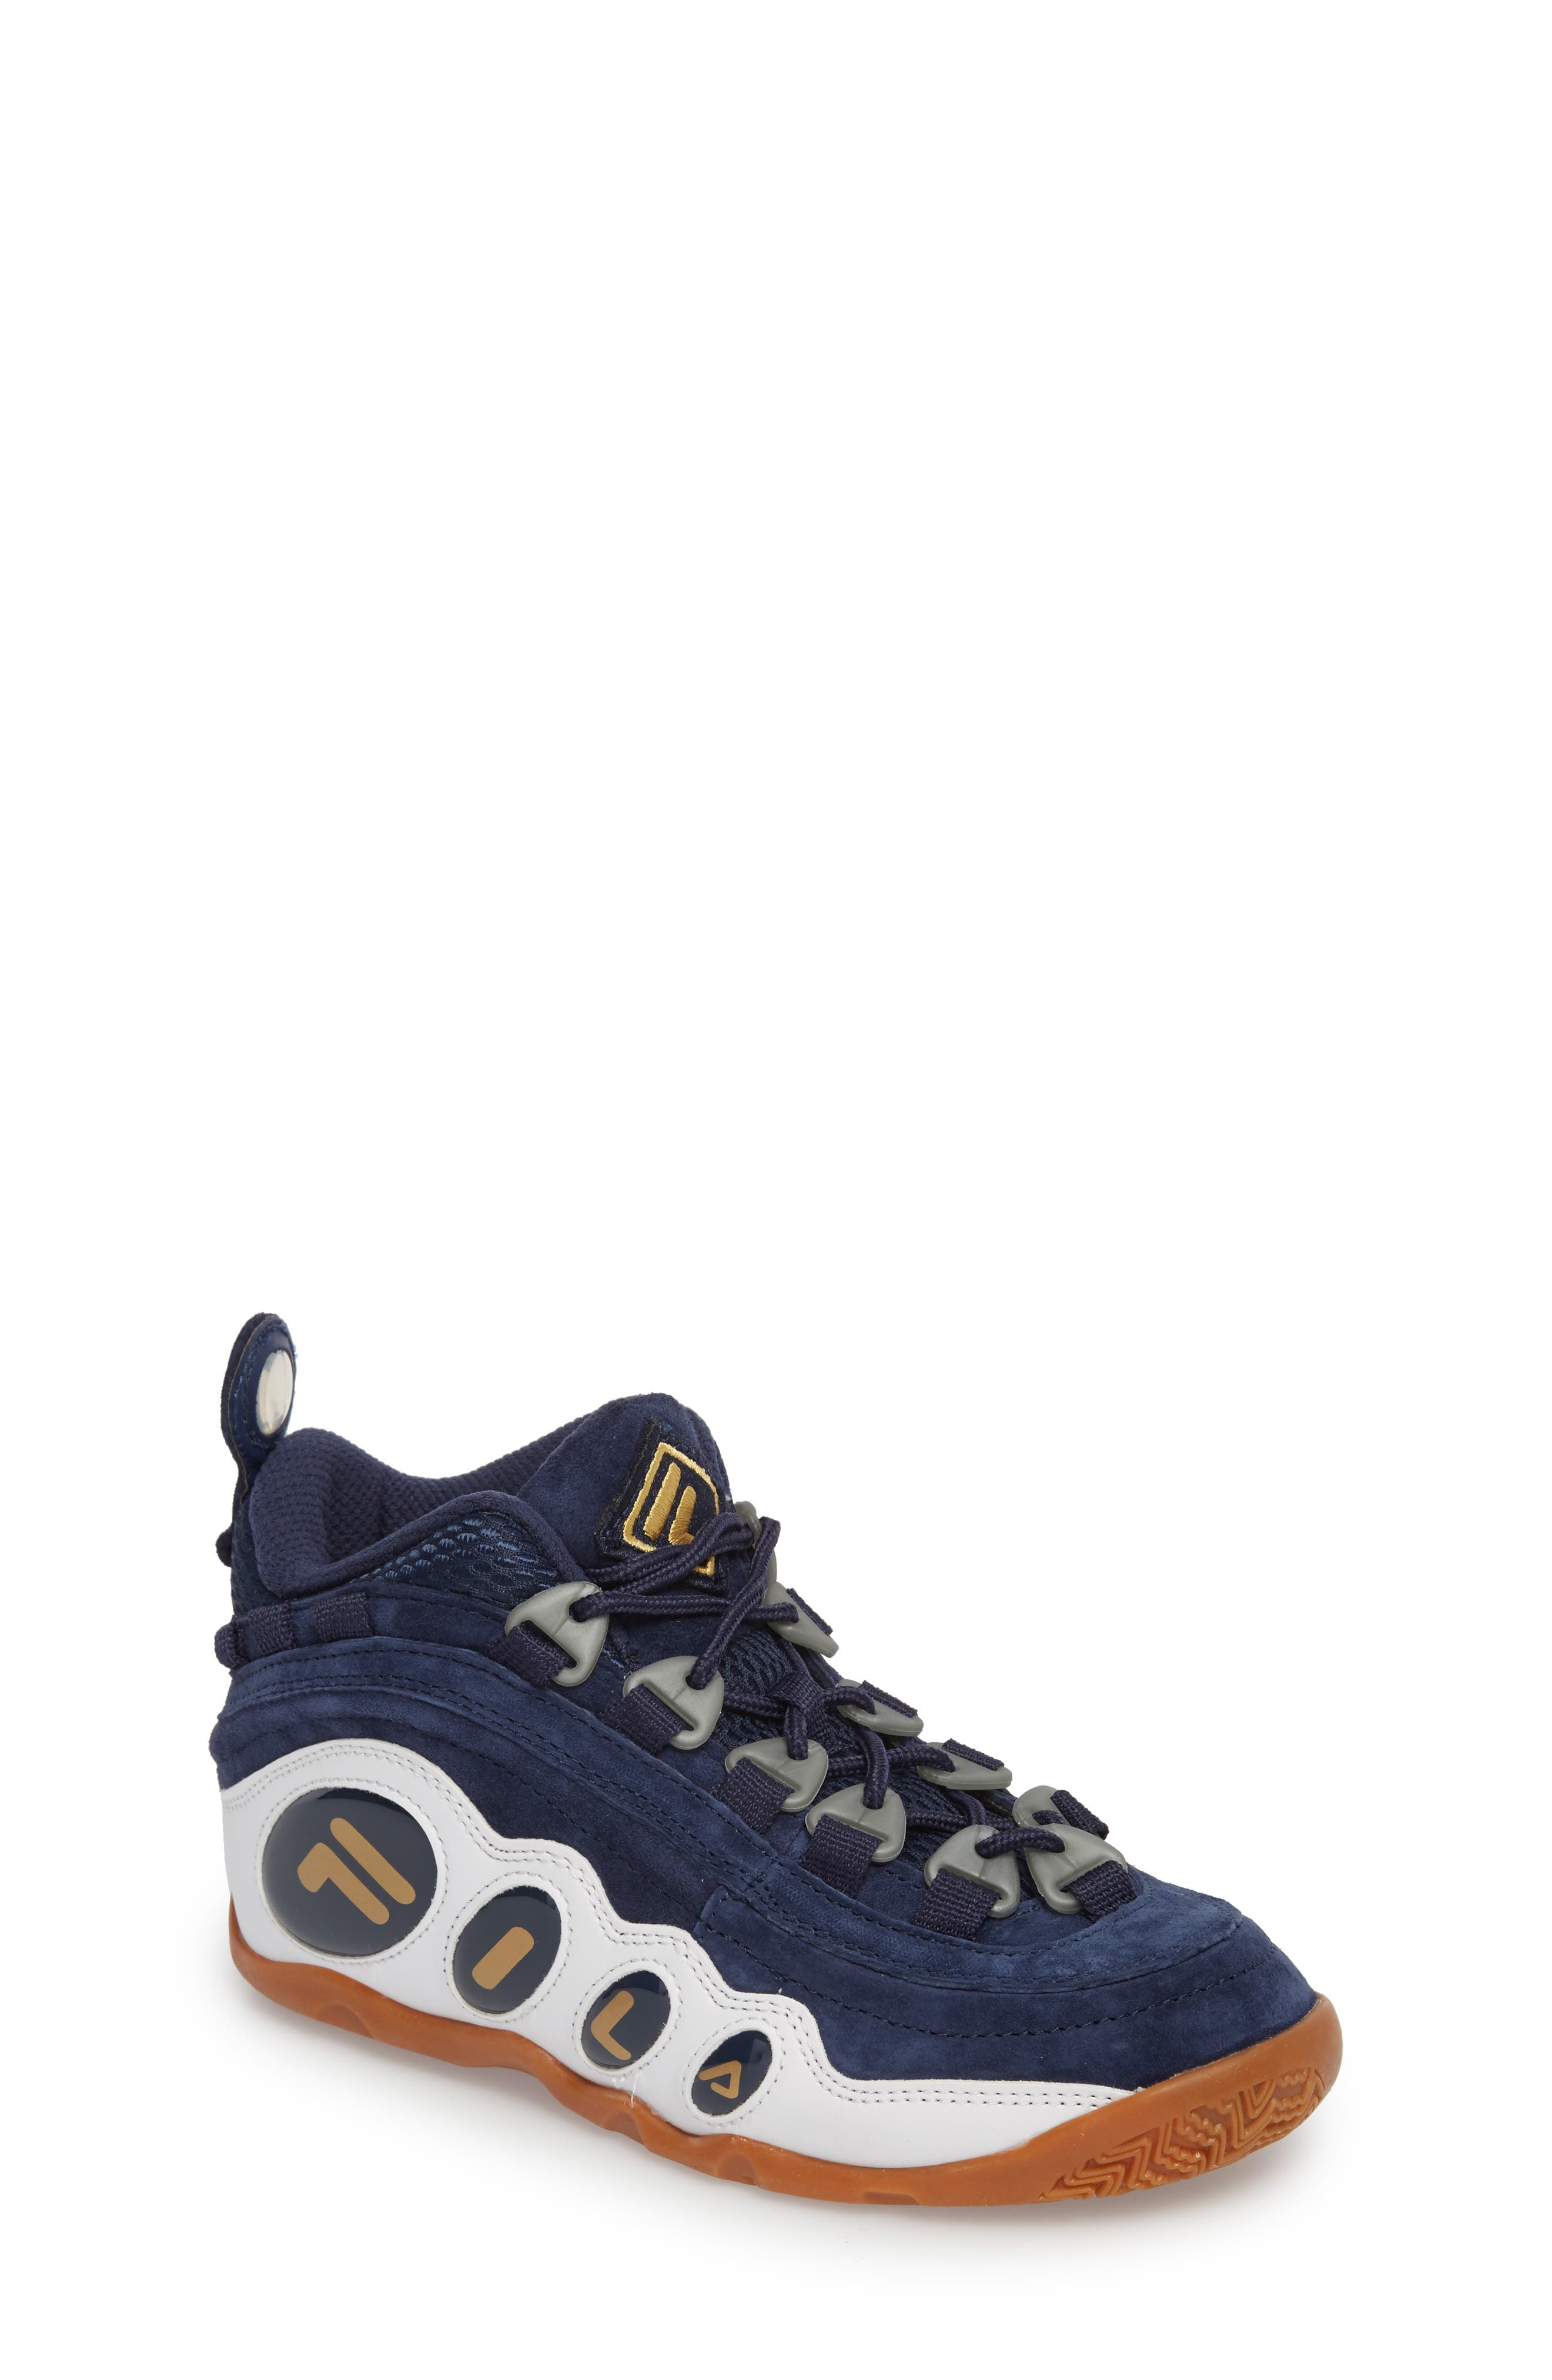 FILA, Bubbles Mid Top Sneaker Boot, Main thumbnail 1, color, NAVY/ GOLD/ WHITE